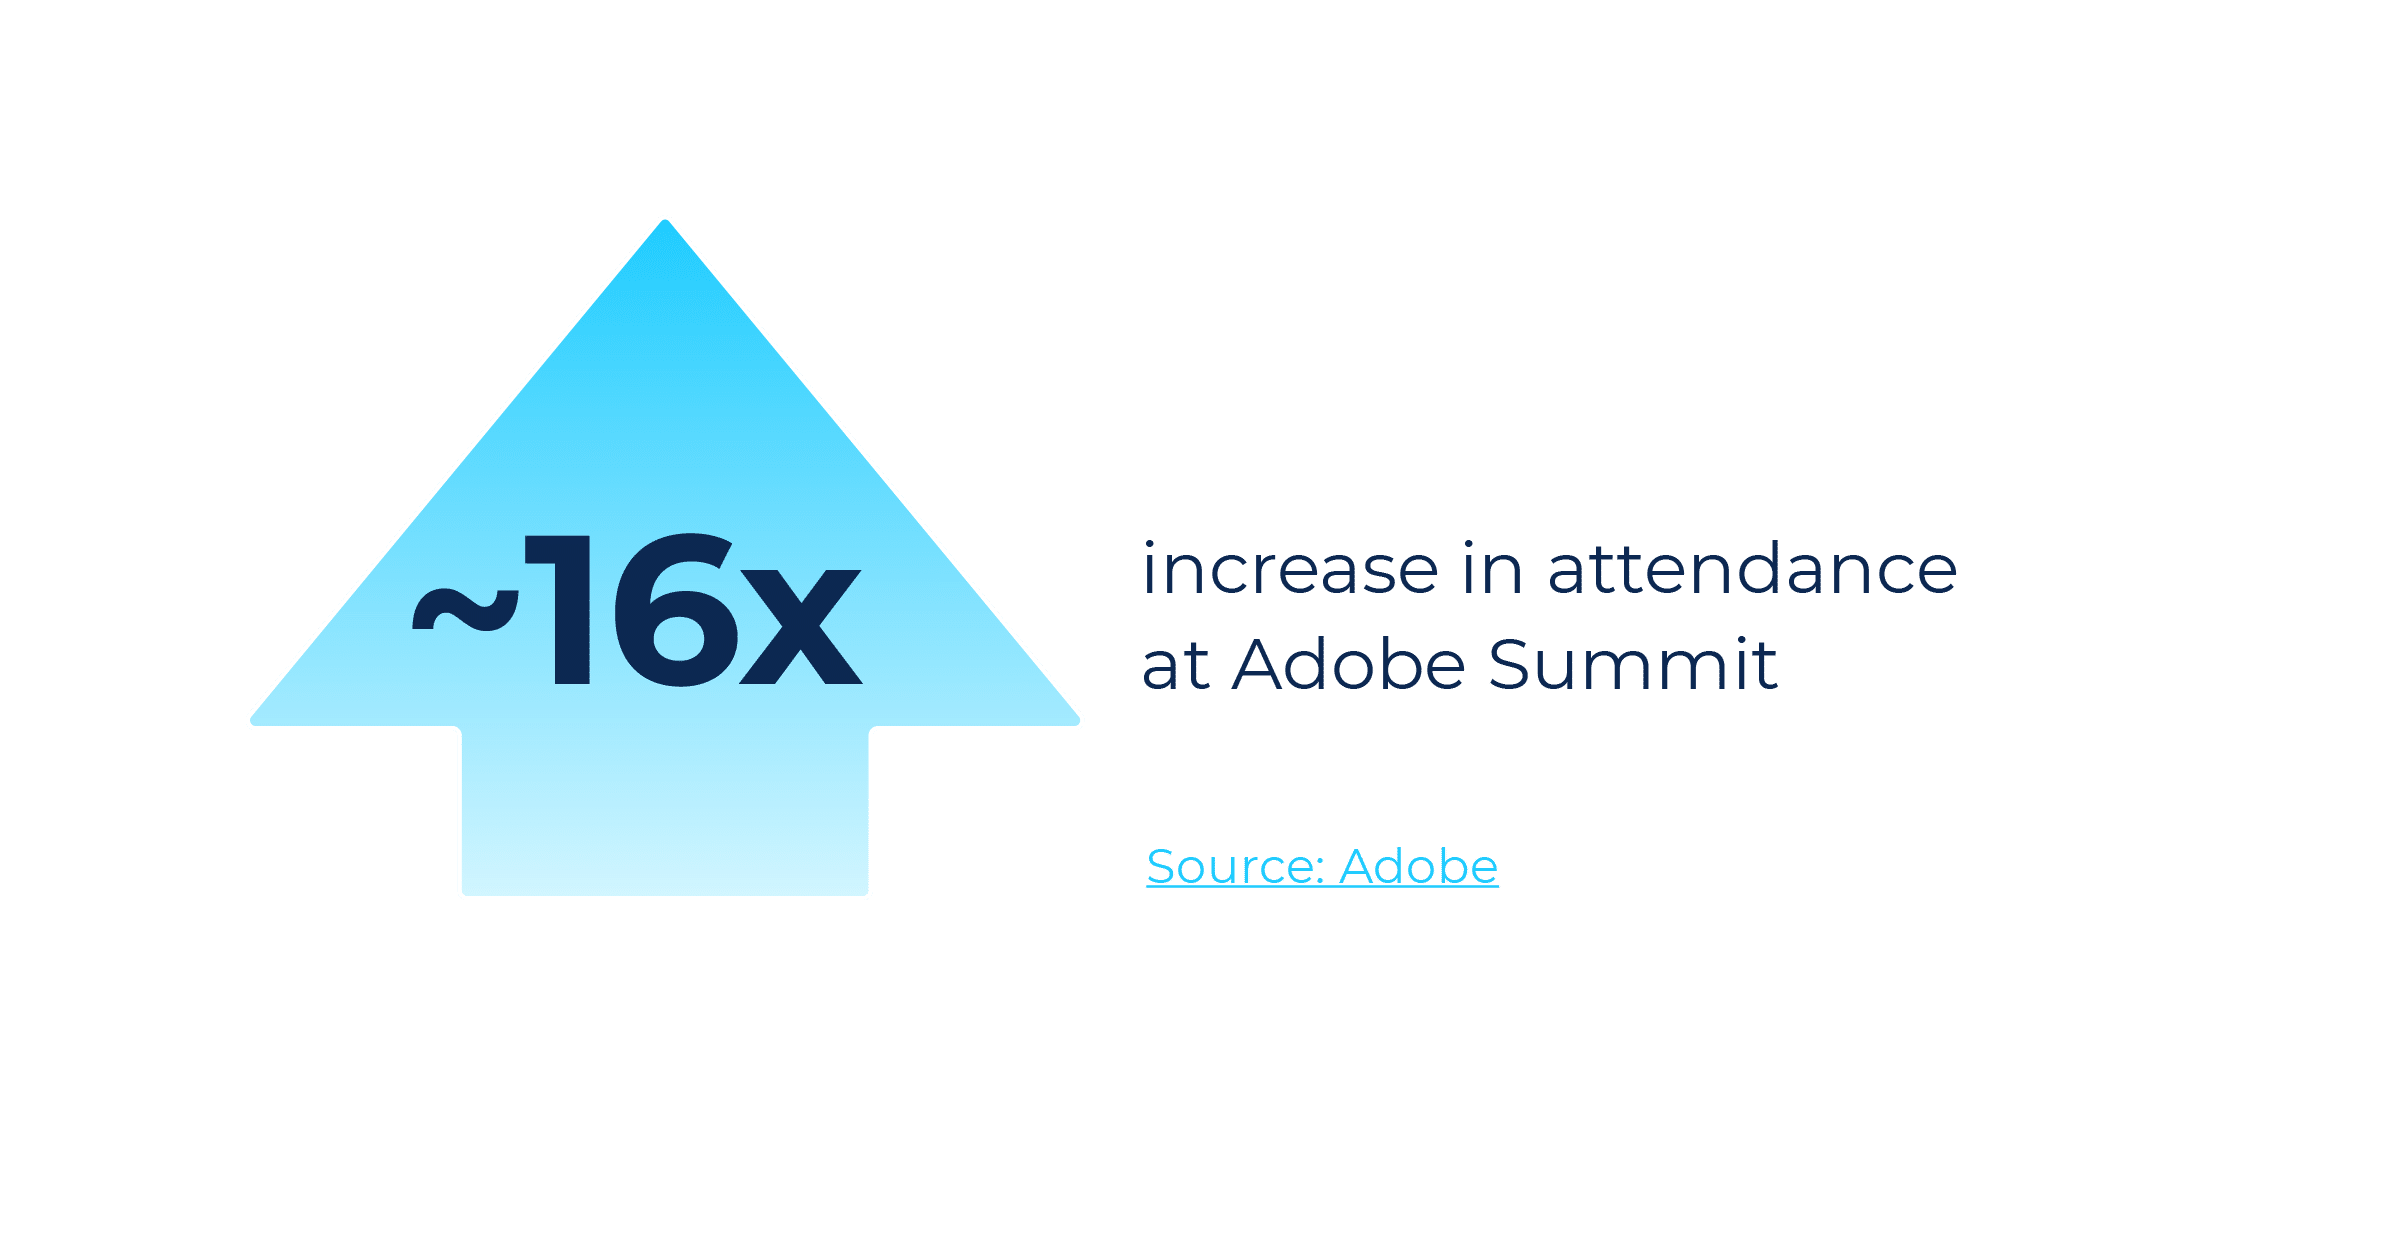 Adobe Summit saw a 16x increase in attendance at their virtual Summit in 2020.